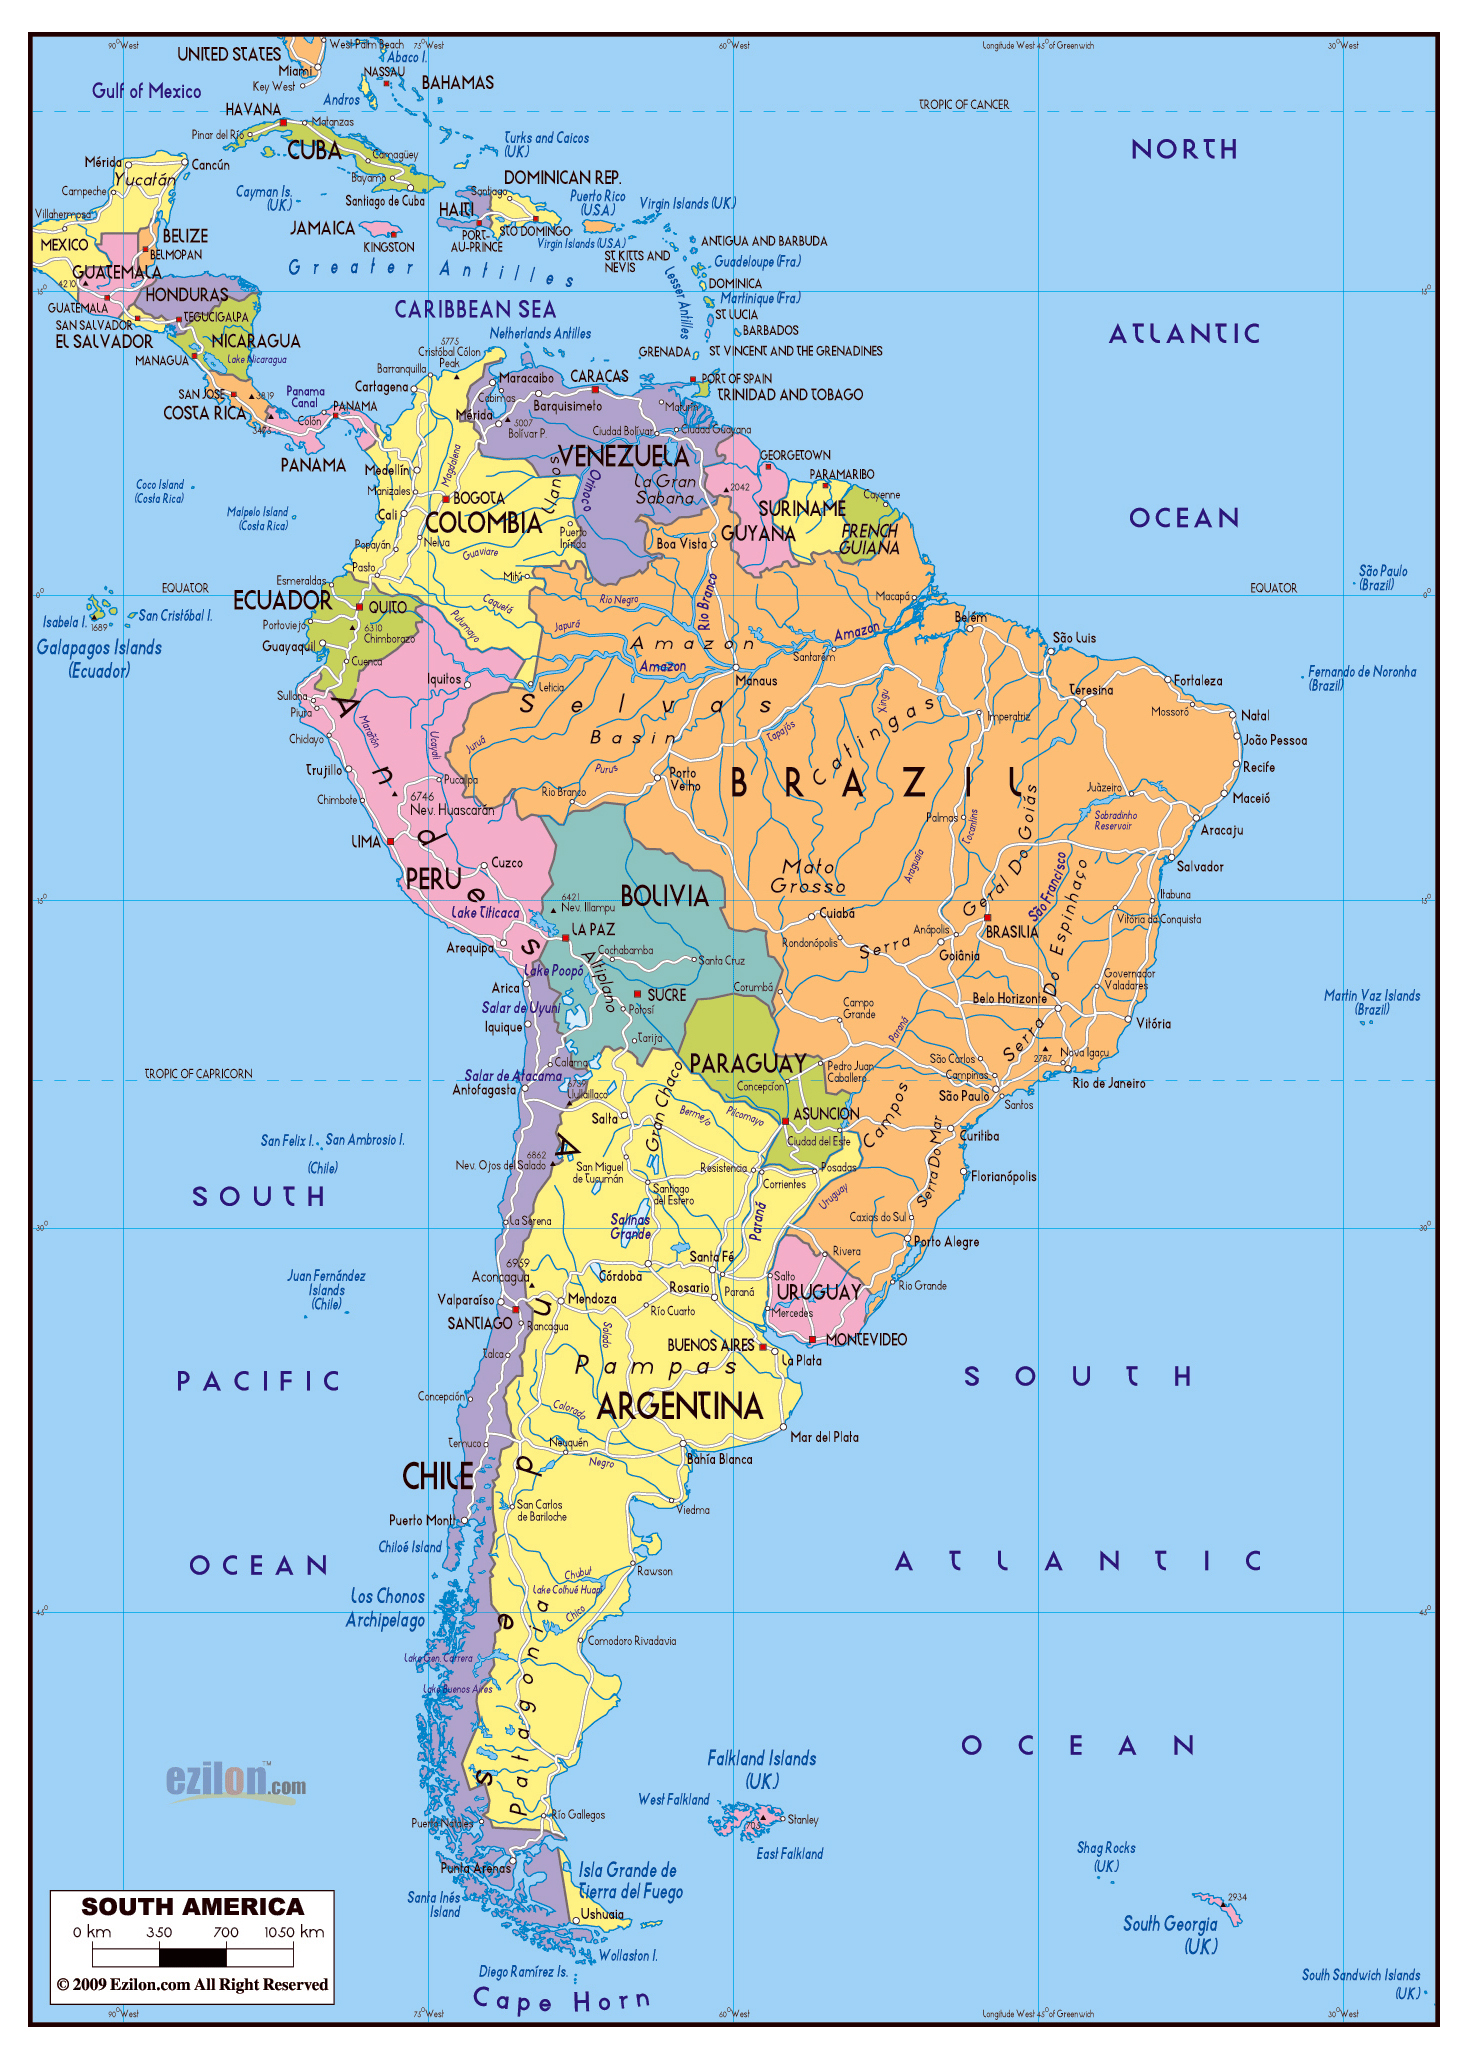 Large political map of South America with roads and major cities